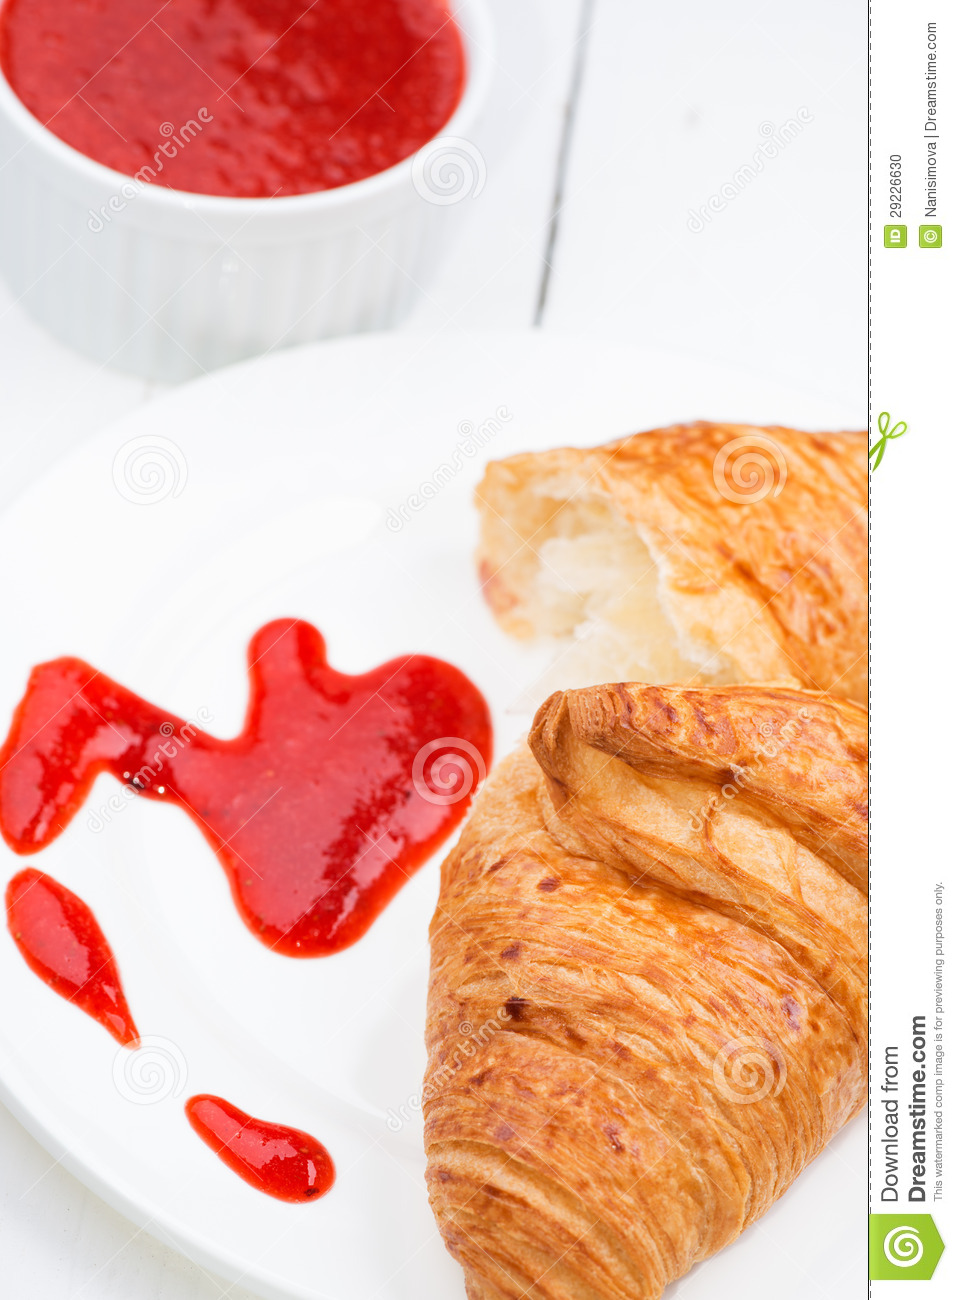 Download Doce Do Croissant E De Morango Foto de Stock - Imagem de flaky, pão: 29226630